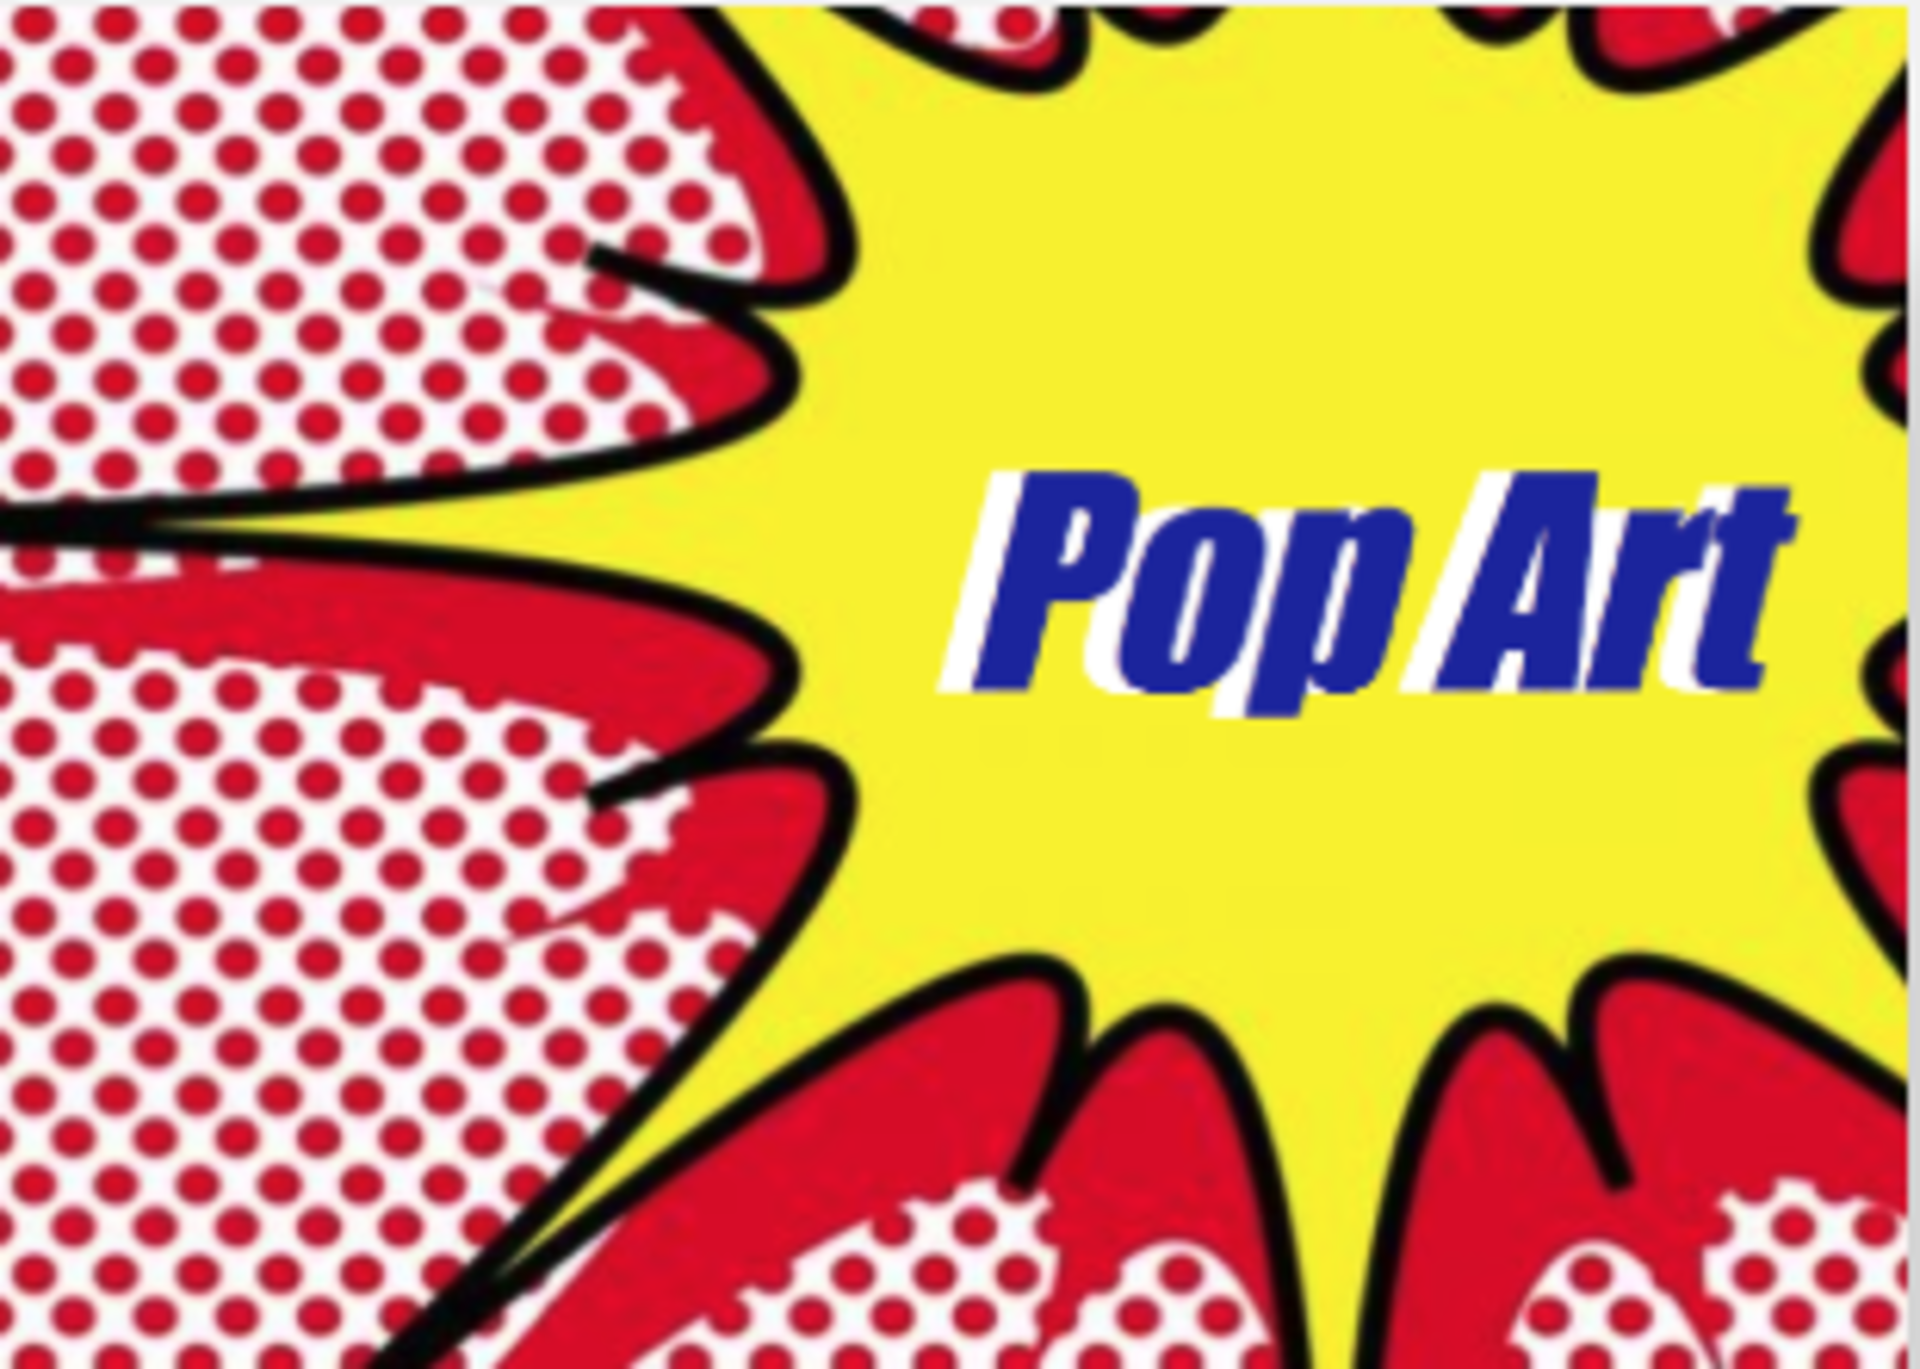 Les pop art